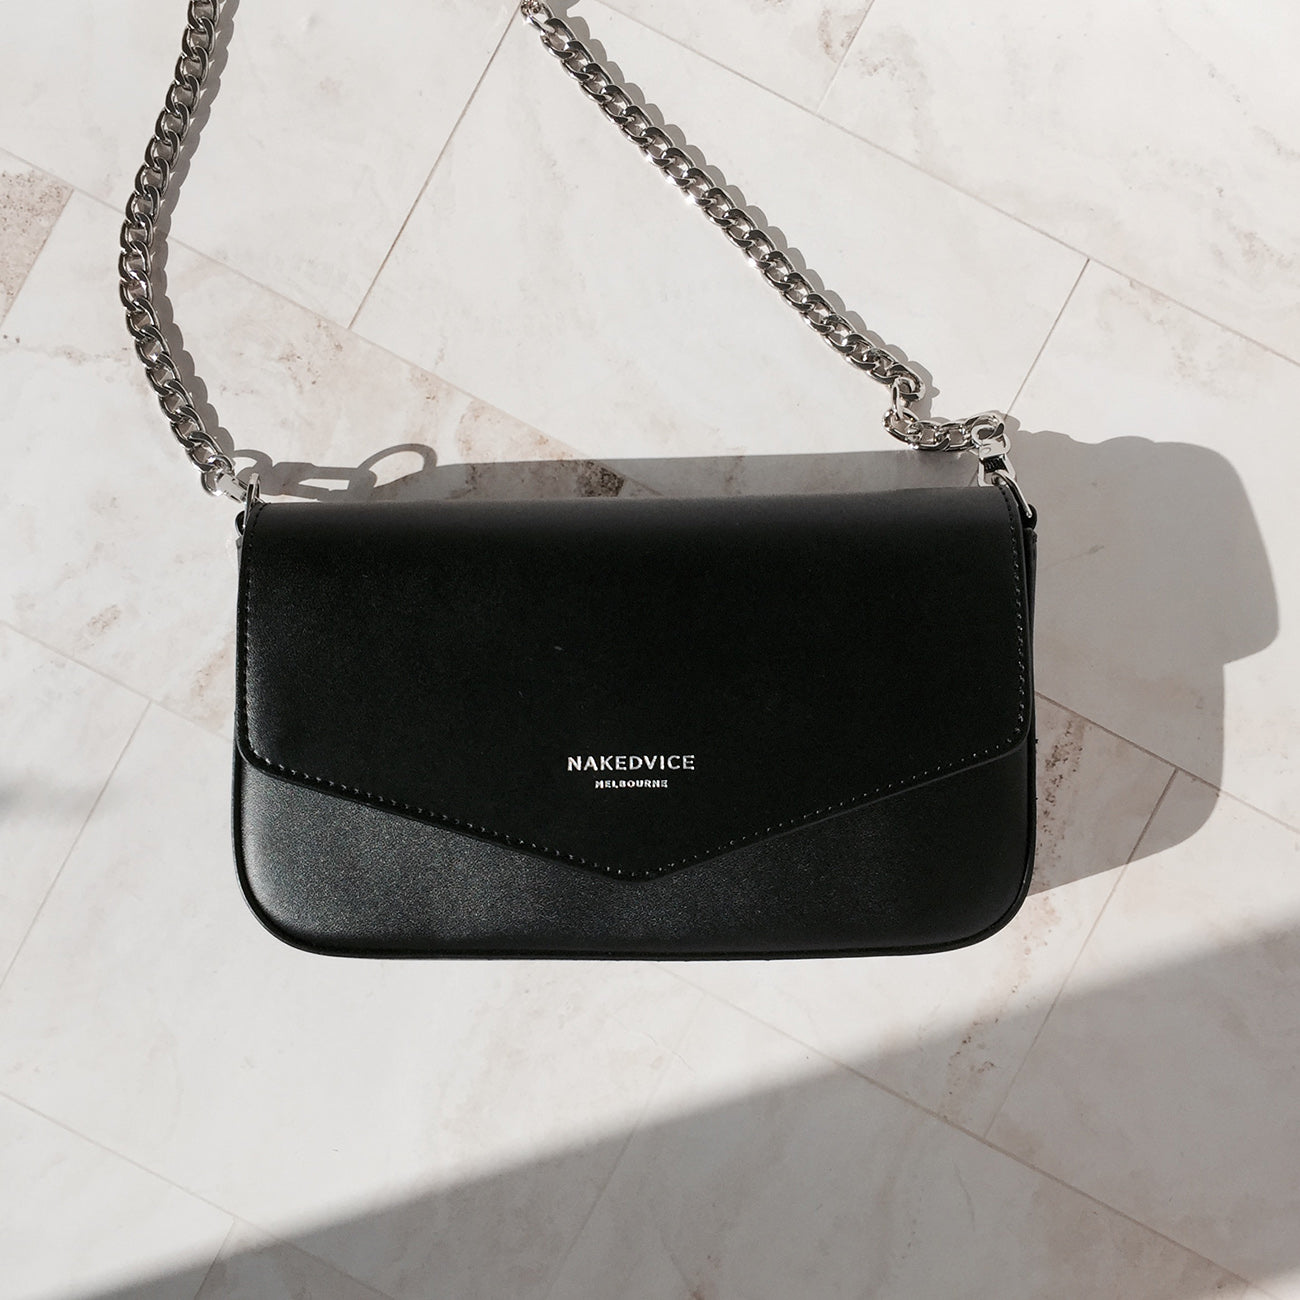 THE GISELLE SILVER SIDE BAG